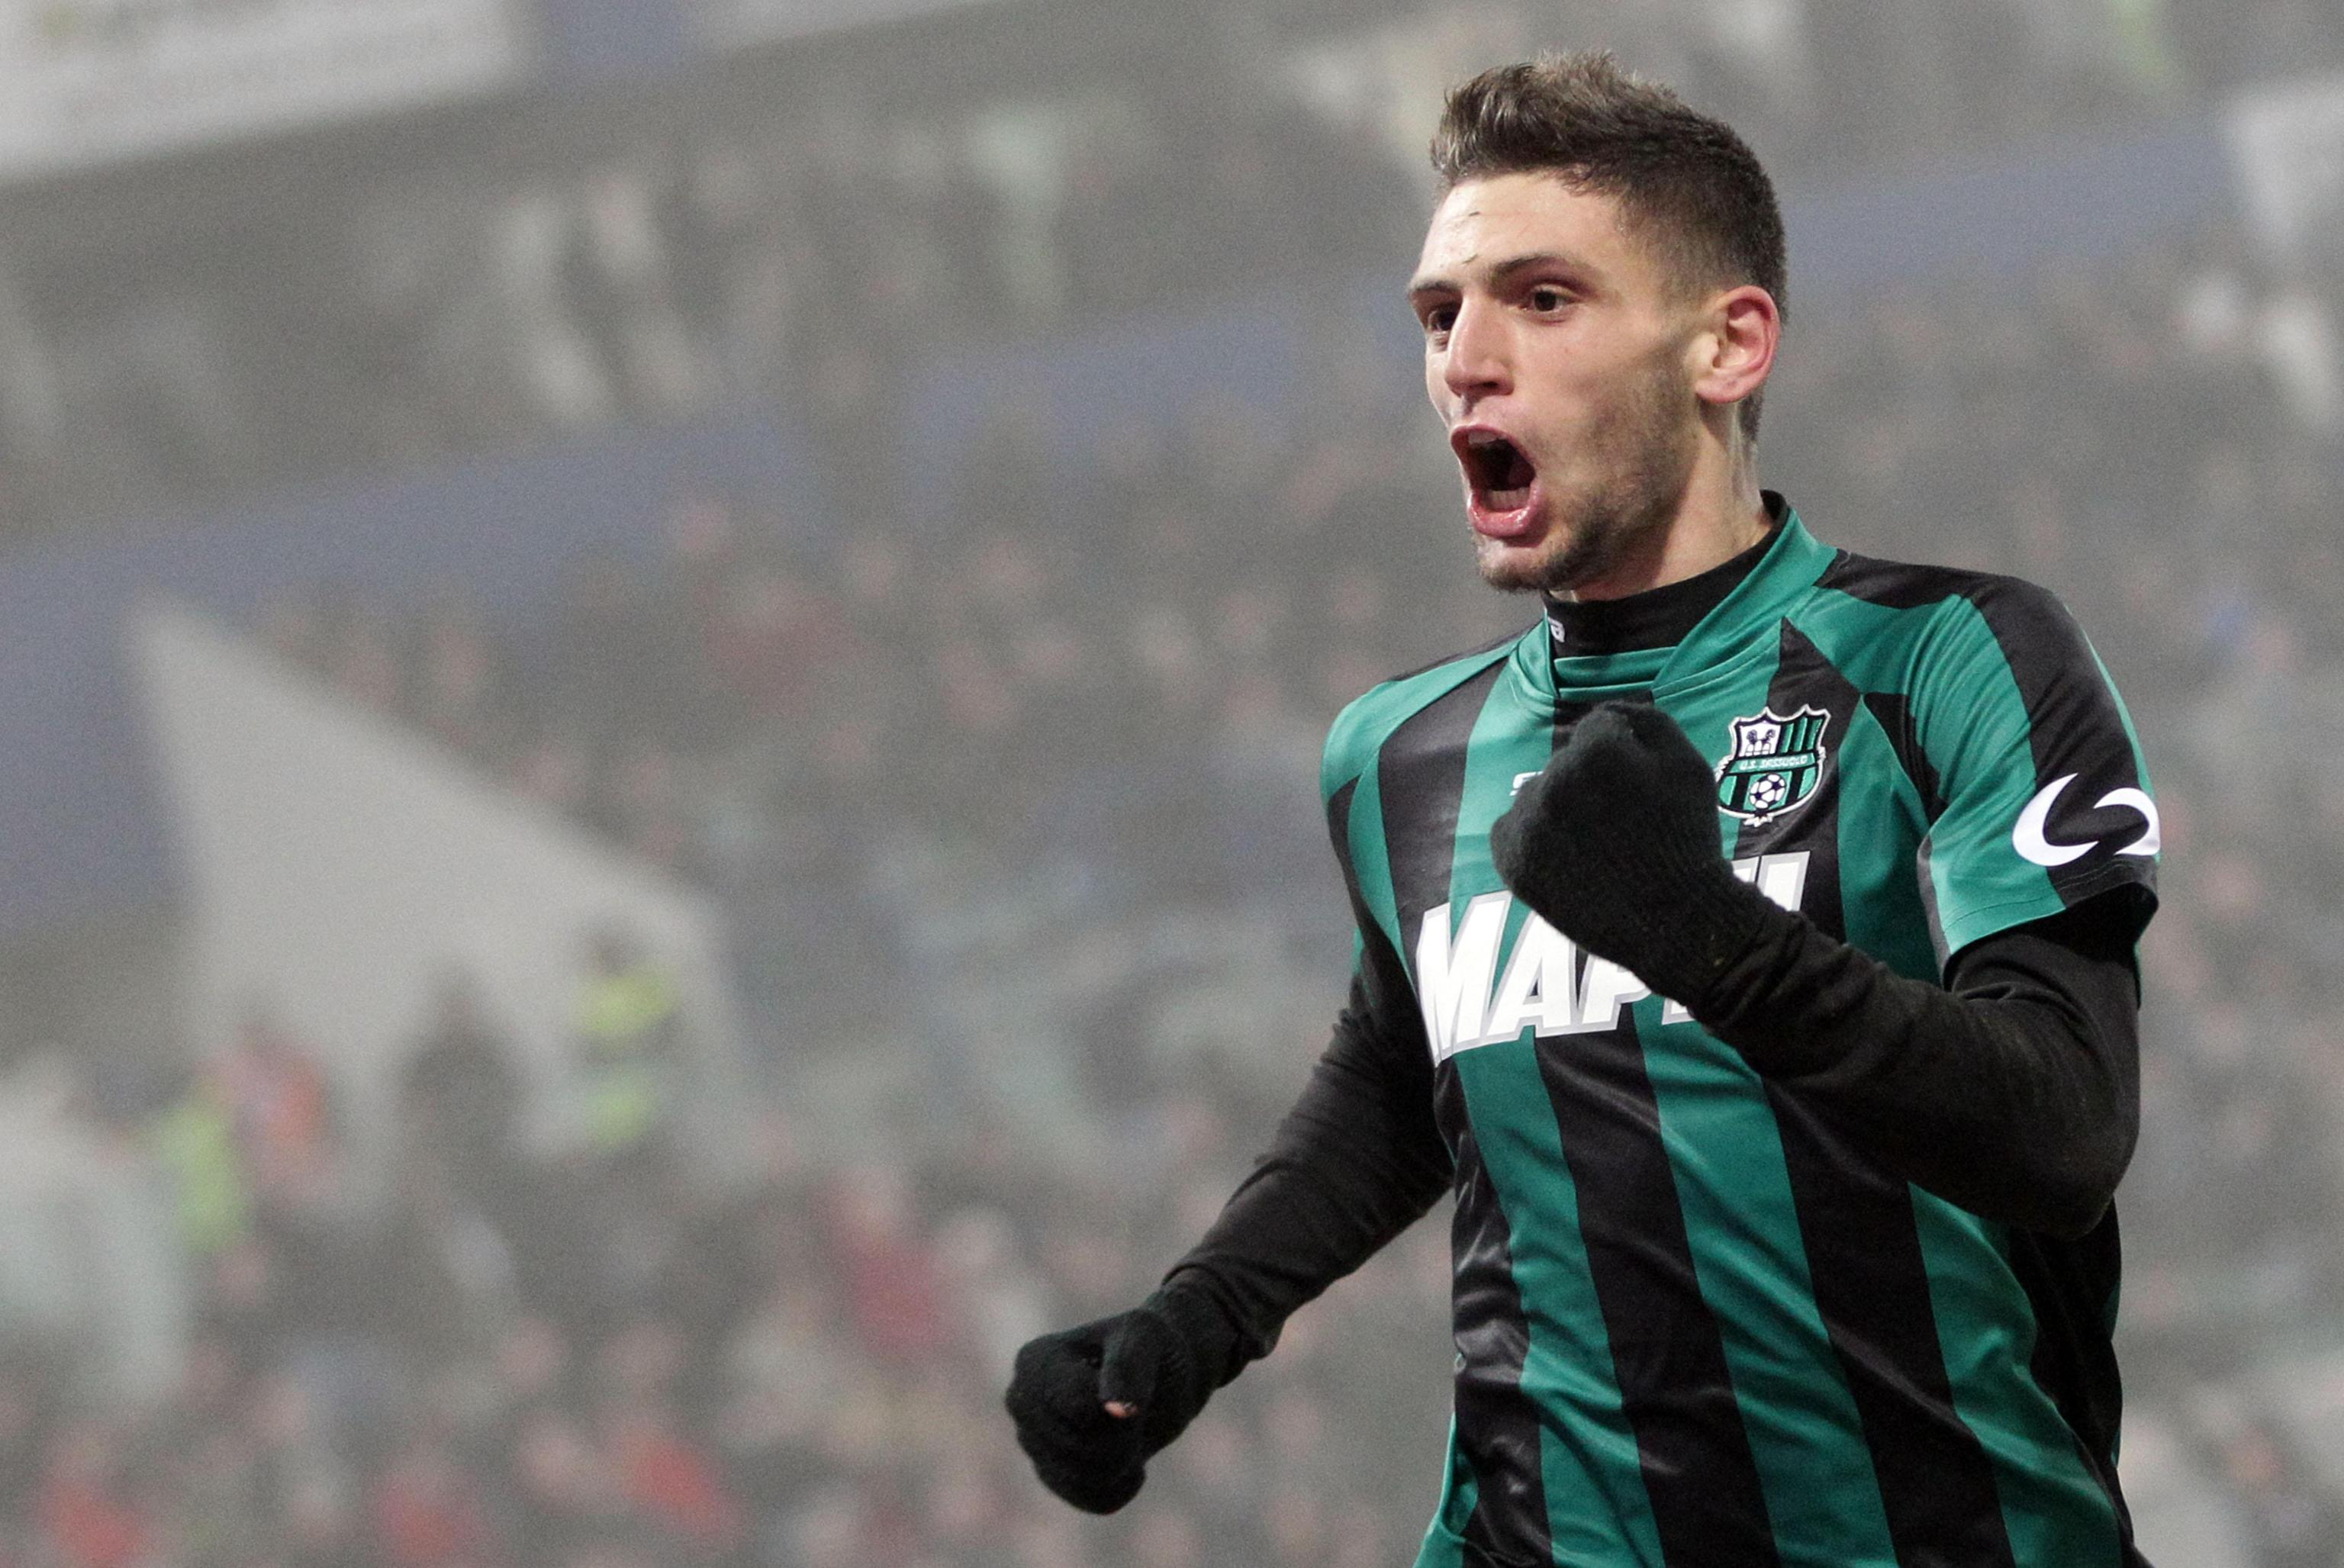 Italian forward Domenico Berardi of Sassuolo celebrates after scoring the 3-2 goal against Ac Milan during Italian Serie A soccer match Sassuolo-Milan at Mapei Stadium in Reggio Emilia, 12 January 2014. ANSA/ELISABETTA BARACCHI